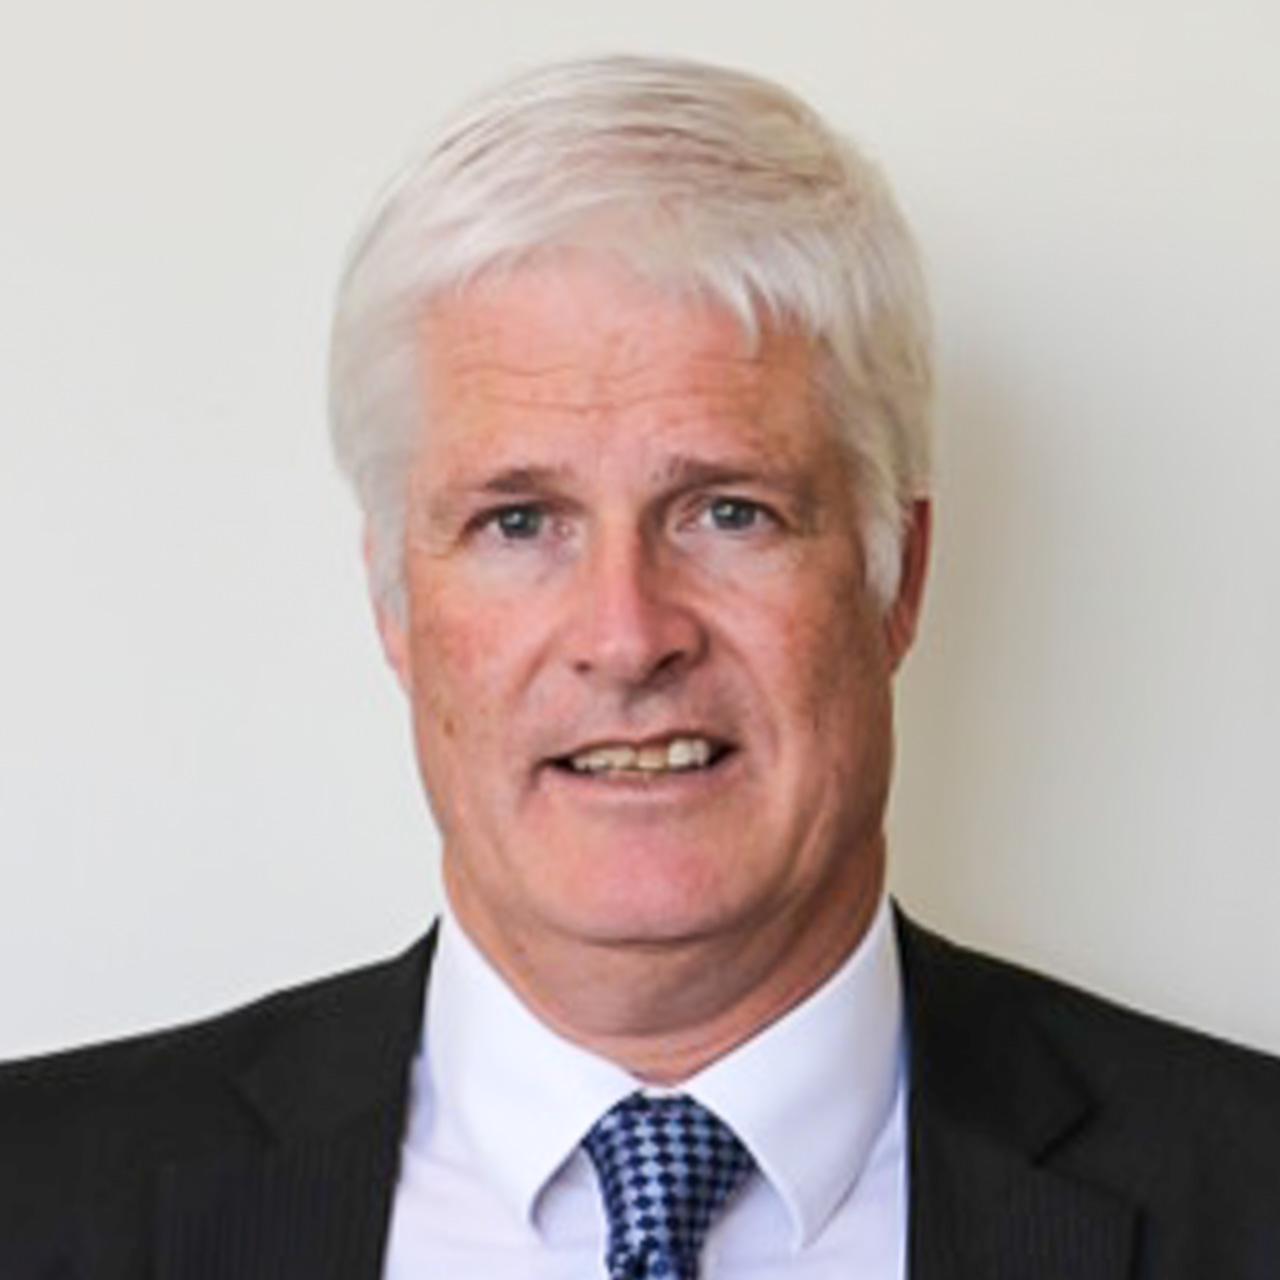 Mr Robert Howells Orthopaedic Surgeon at Union Road Specialist Centre, Surrey Hills